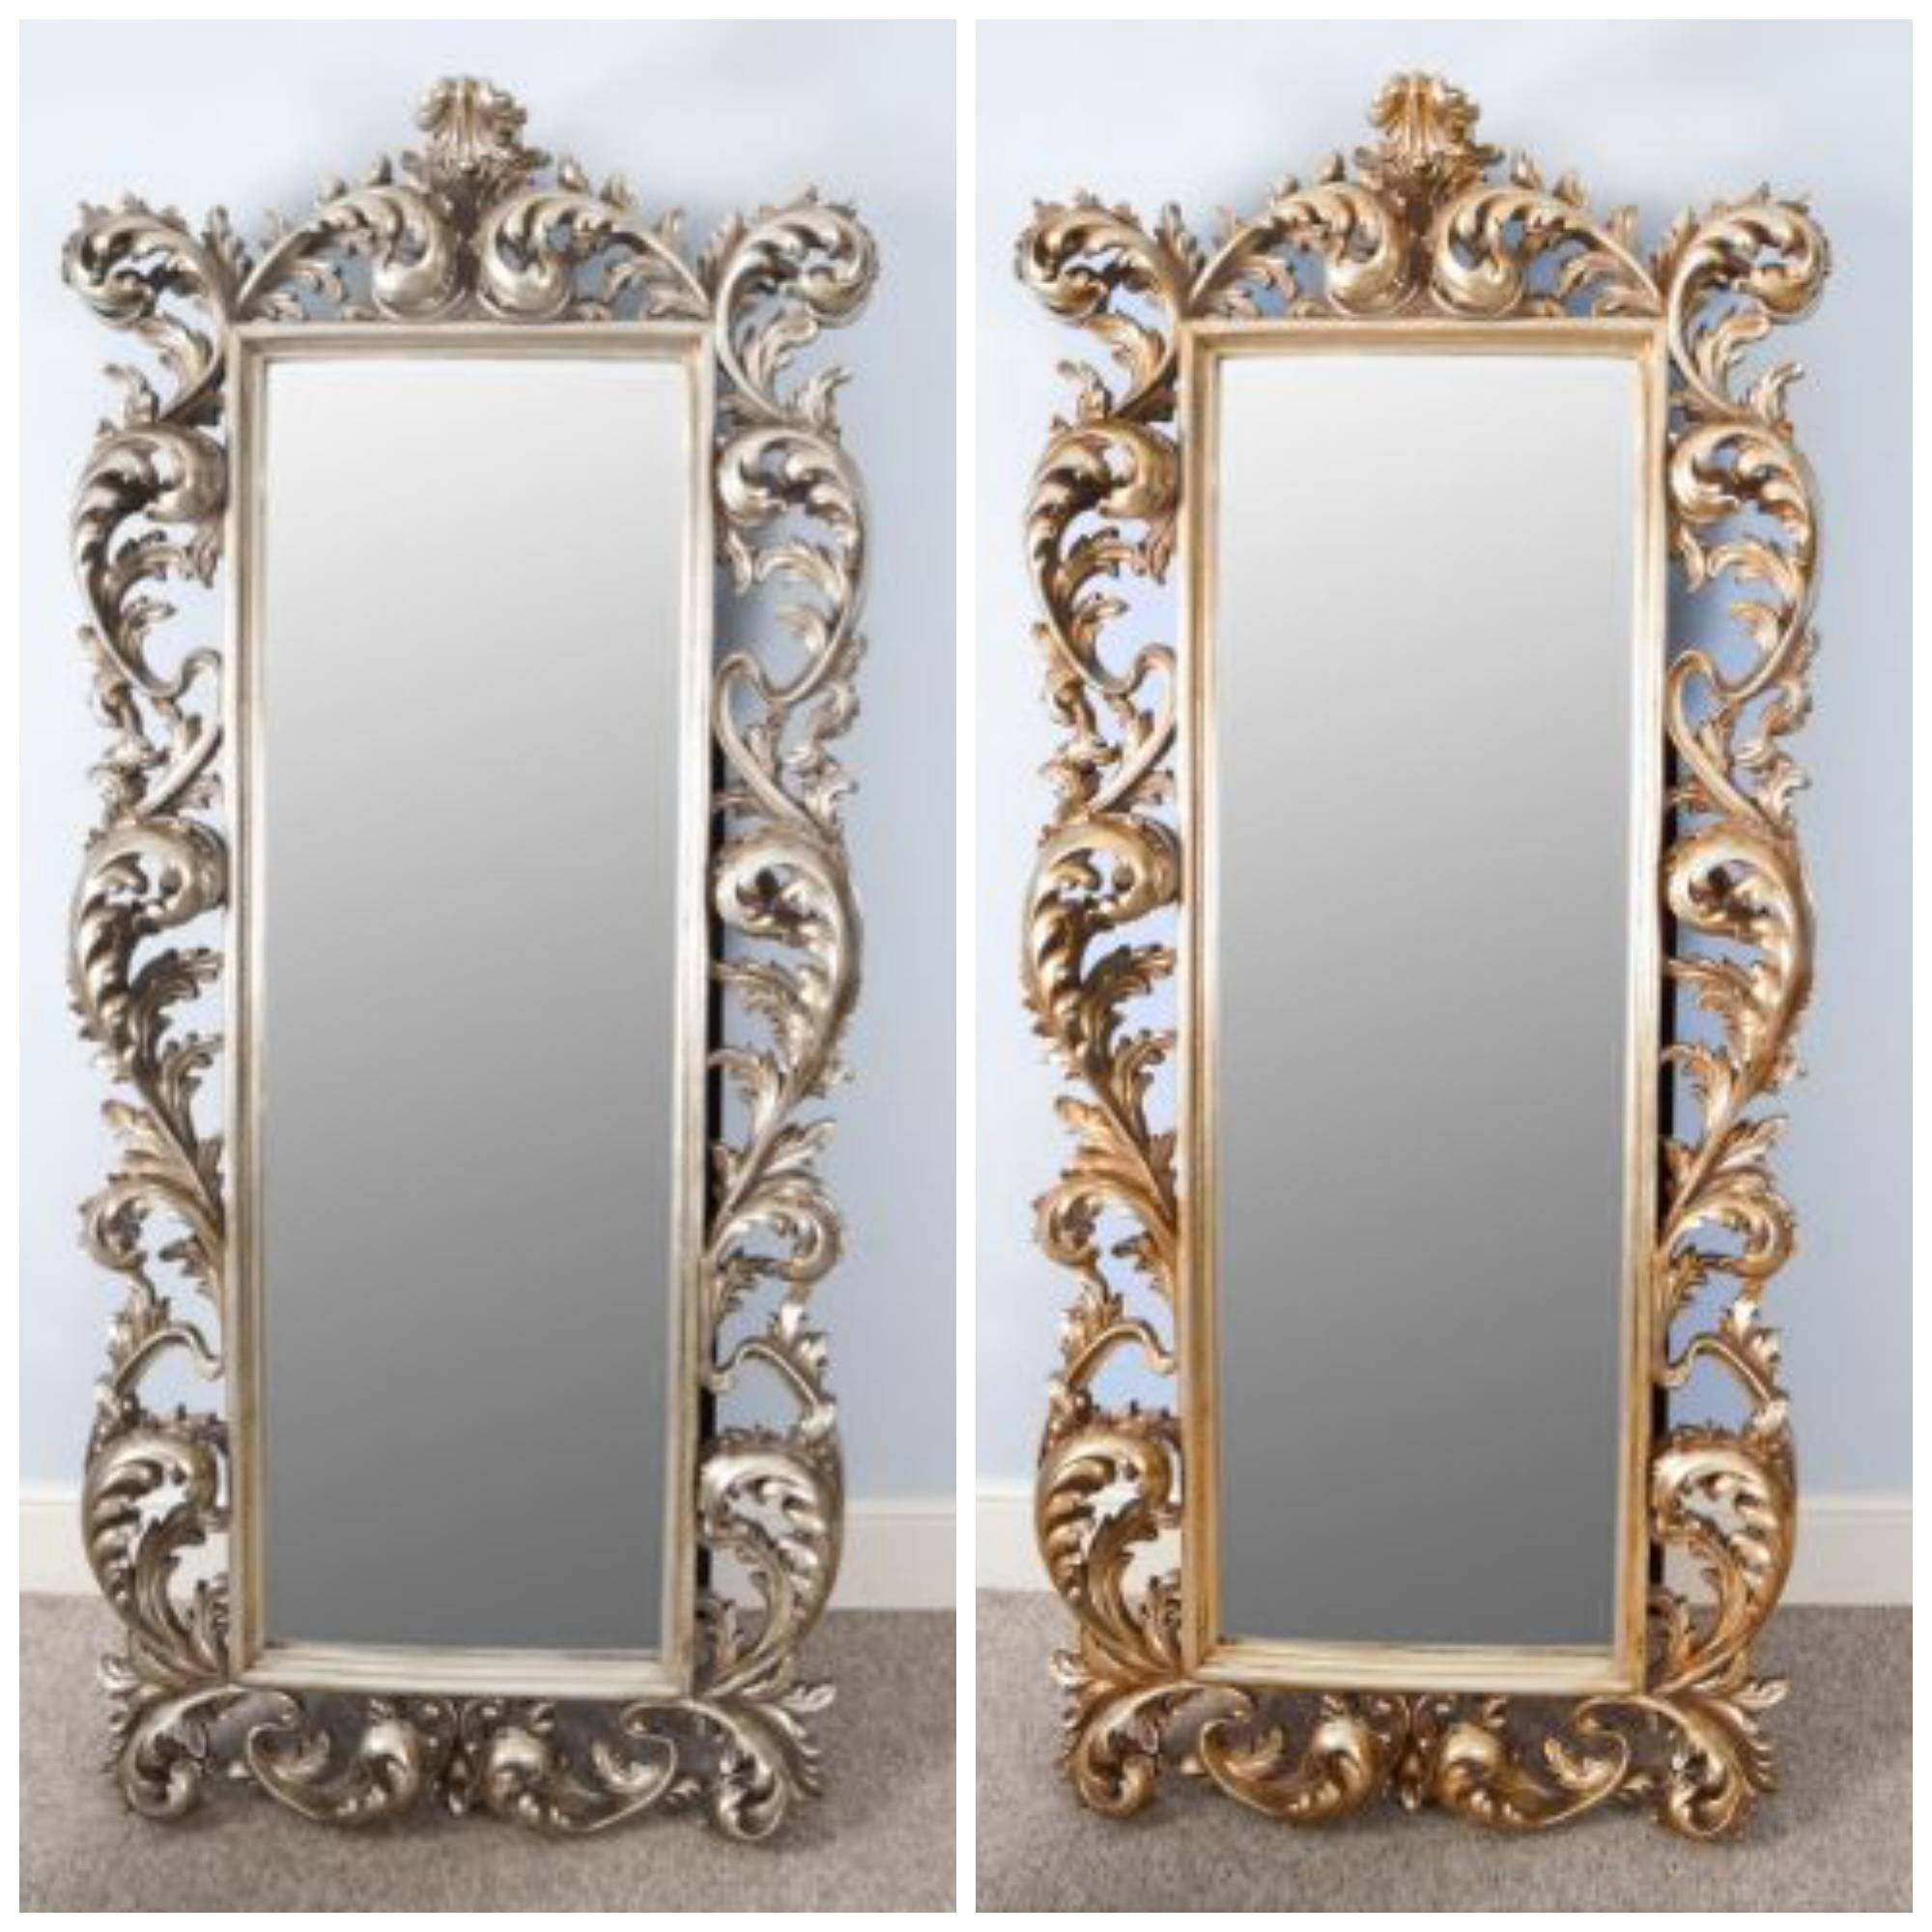 Decorative Gold Mirrors | Gen4congress With Regard To Gold Mirrors (View 2 of 15)